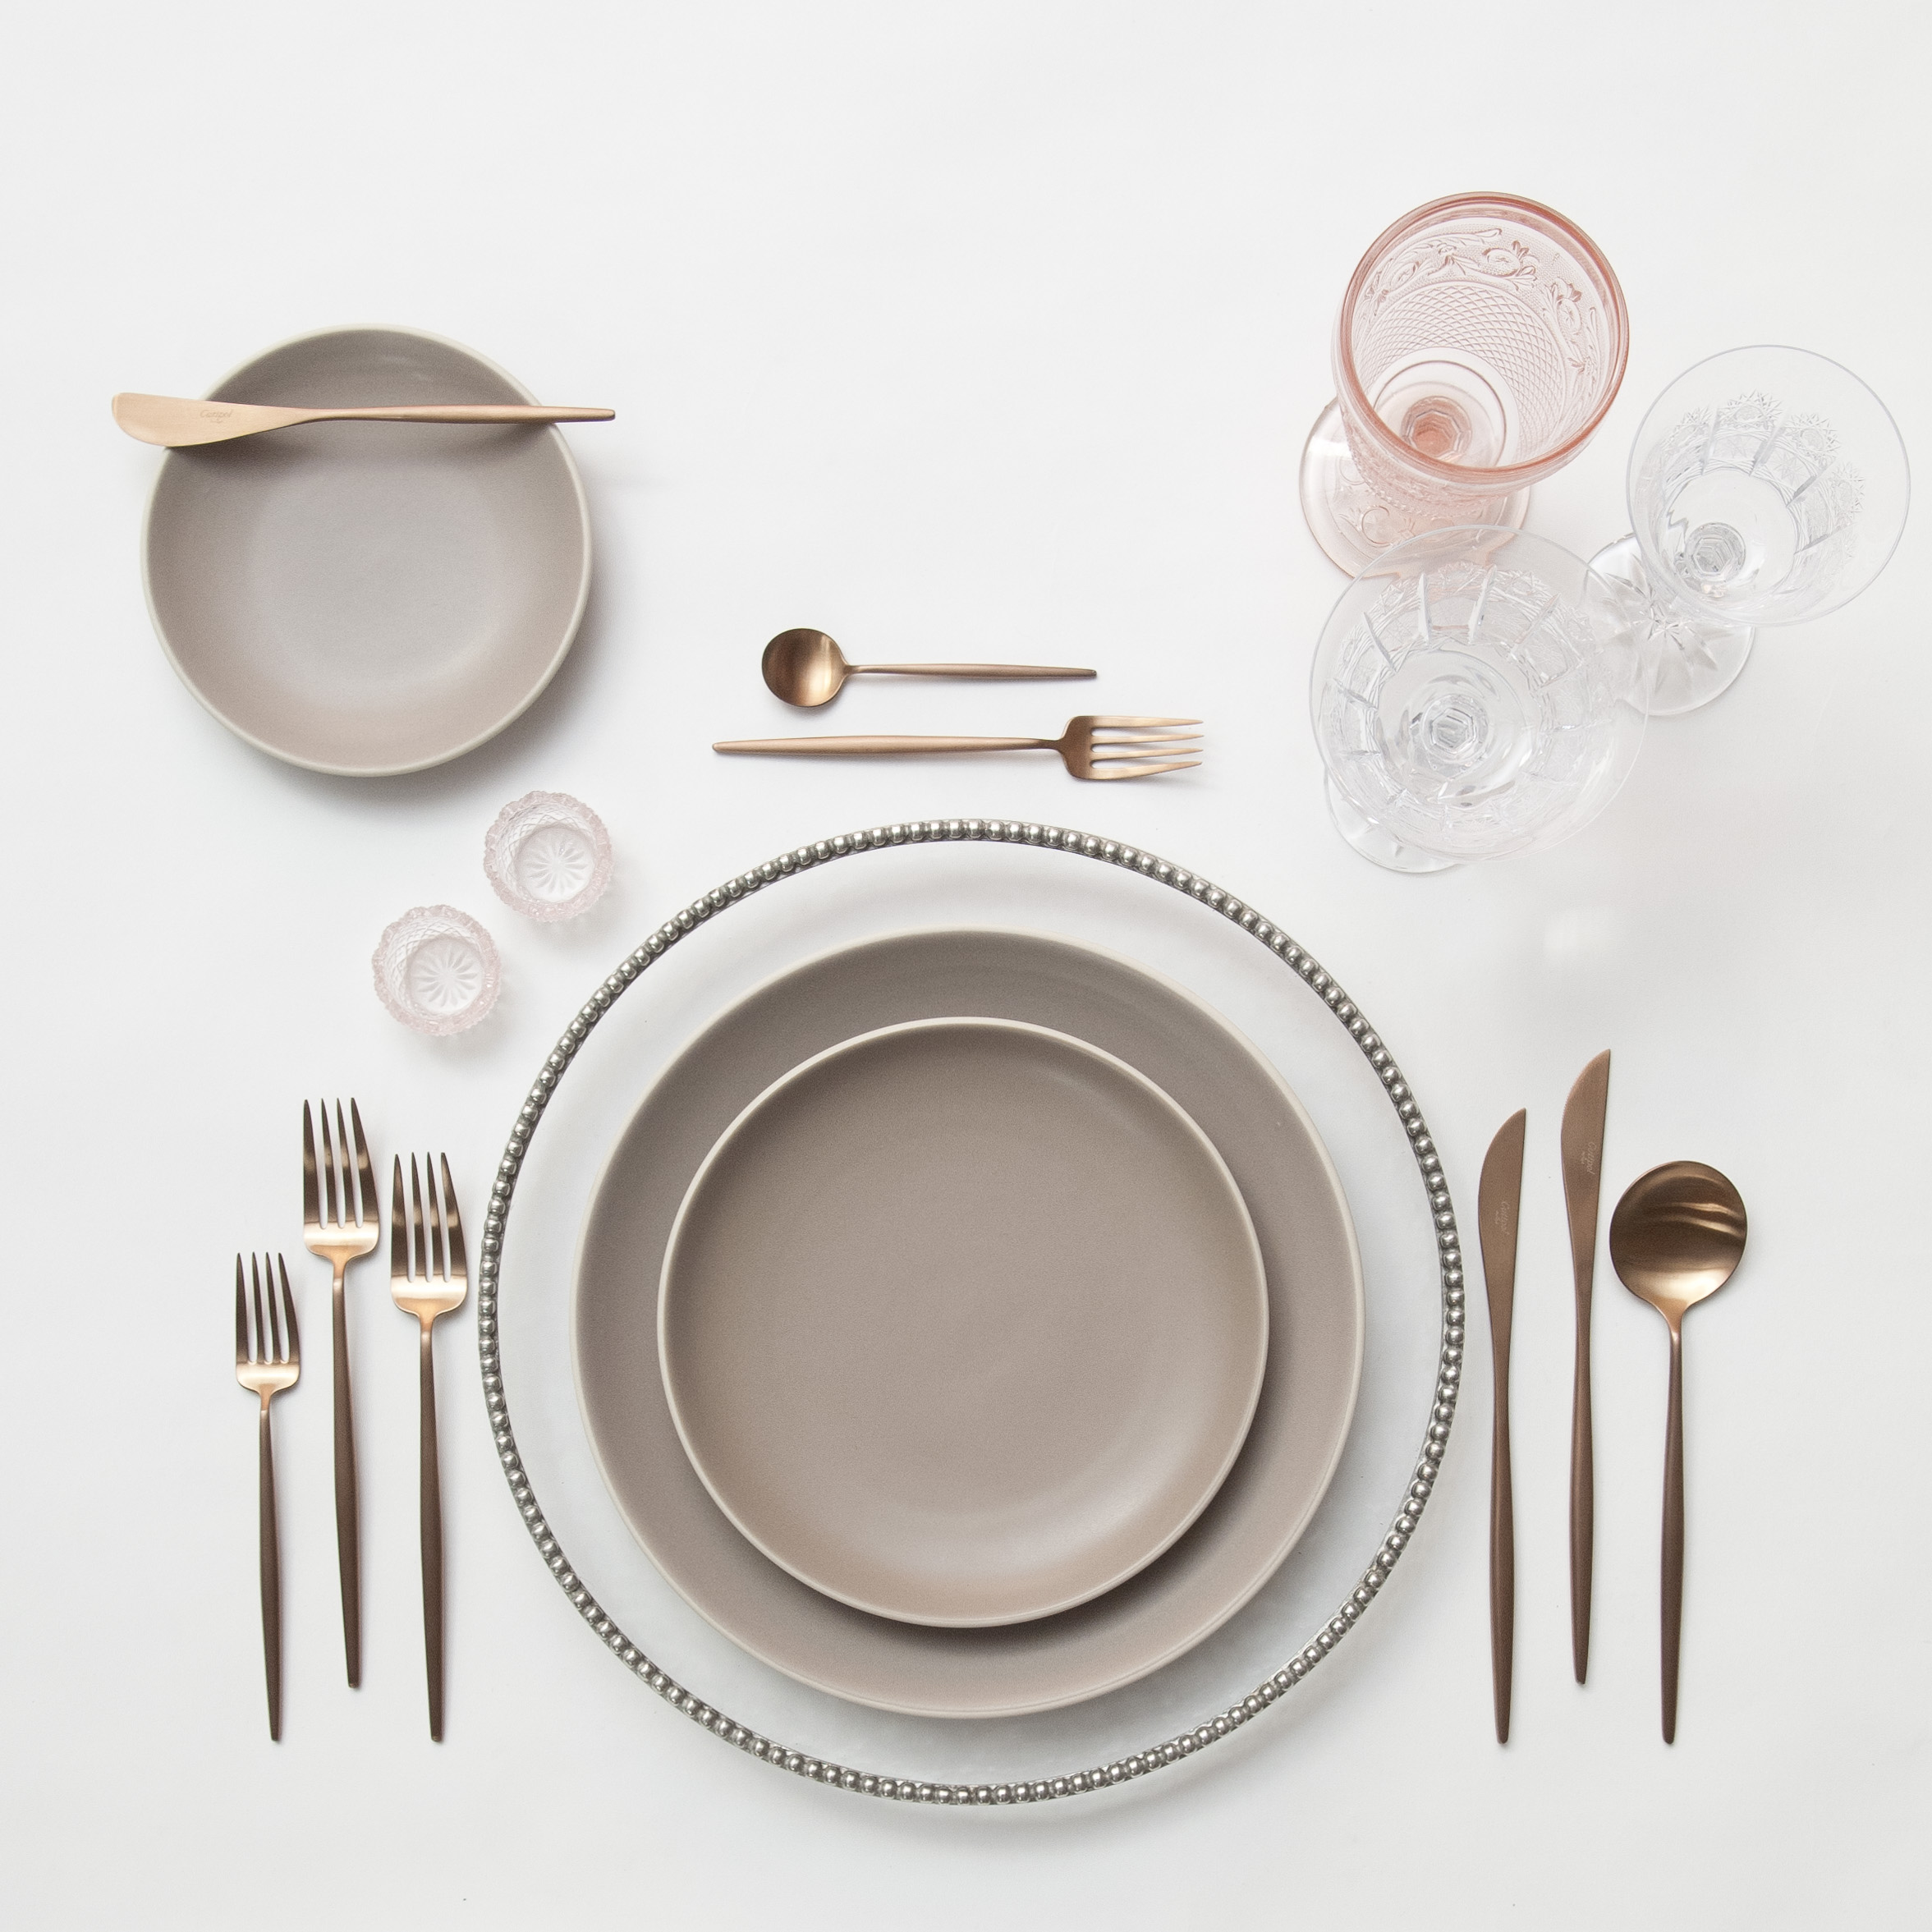 RENT: Pav é Glass  Chargers in Pewter + Heath Ceramics in French Grey + Moon Flatware in Brushed Rose Gold + Pink Vintage Goblets + Czech Crystal Stemware + Pink Crystal Salt Cellars   SHOP: Moon Flatware in Brushed Rose Gold